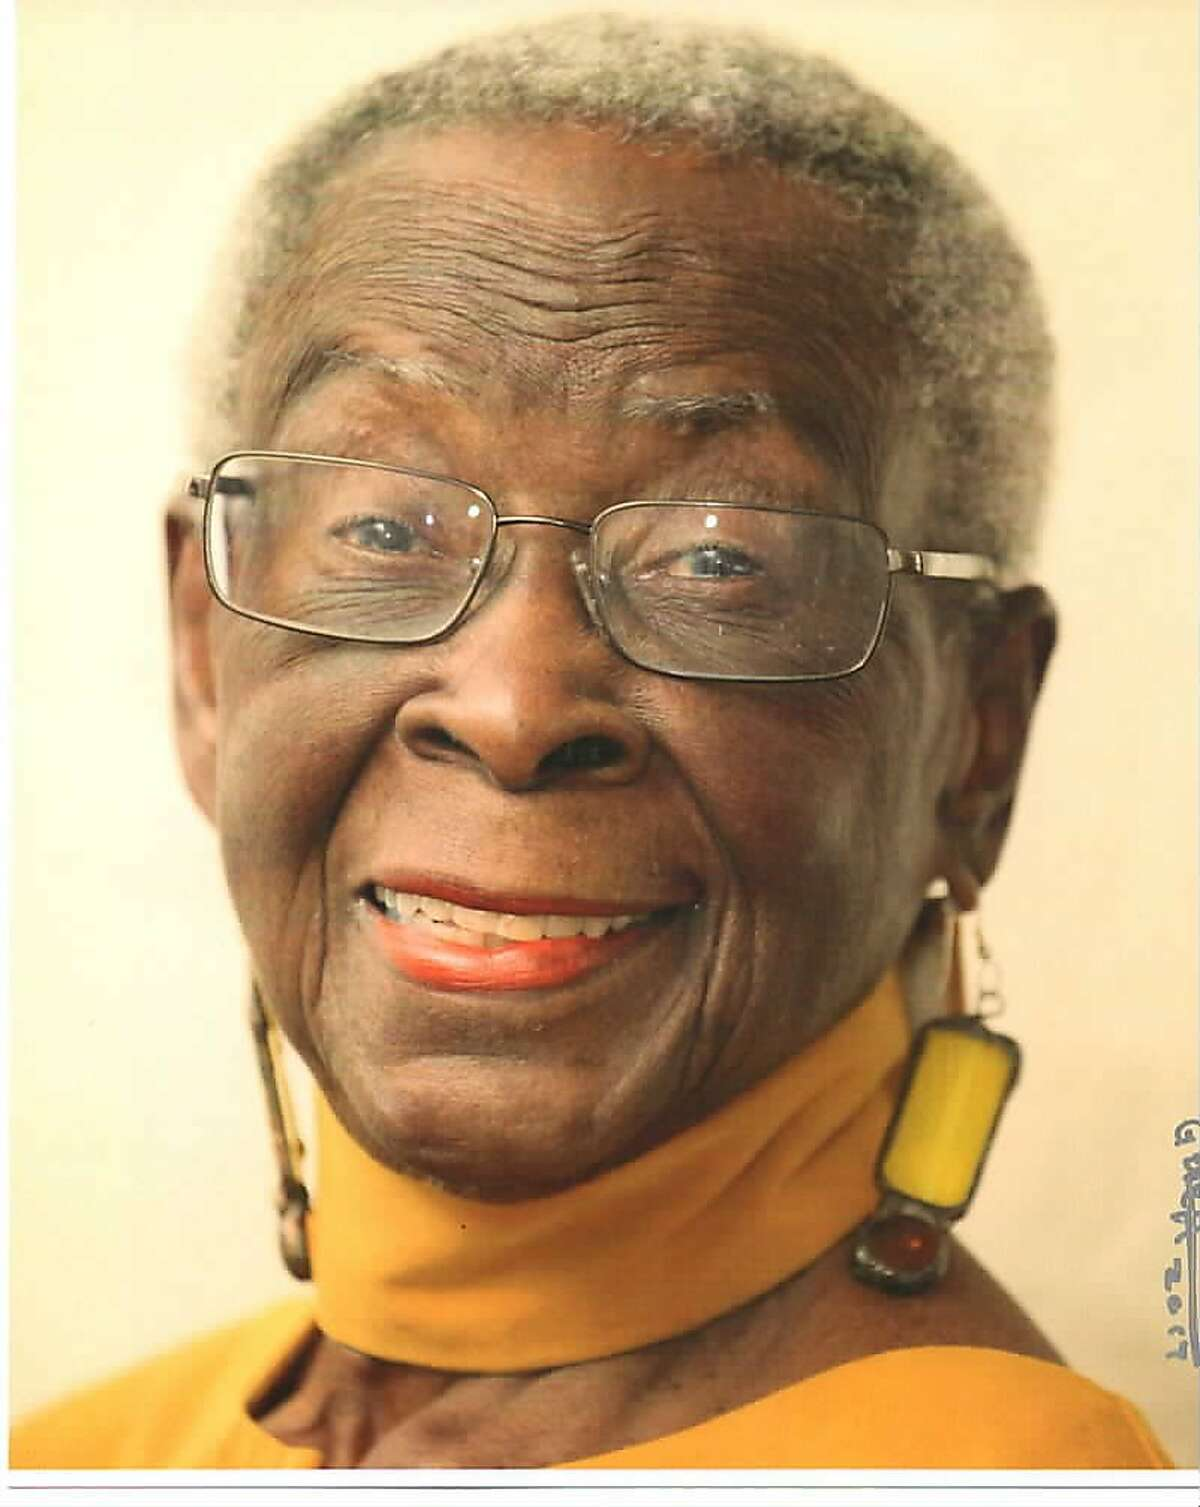 Ruth Beckford, a�longtime�Oakland resident, was a legendary dancer, choreographer and community activist. She died May 8 of natural causes at the age of 93.